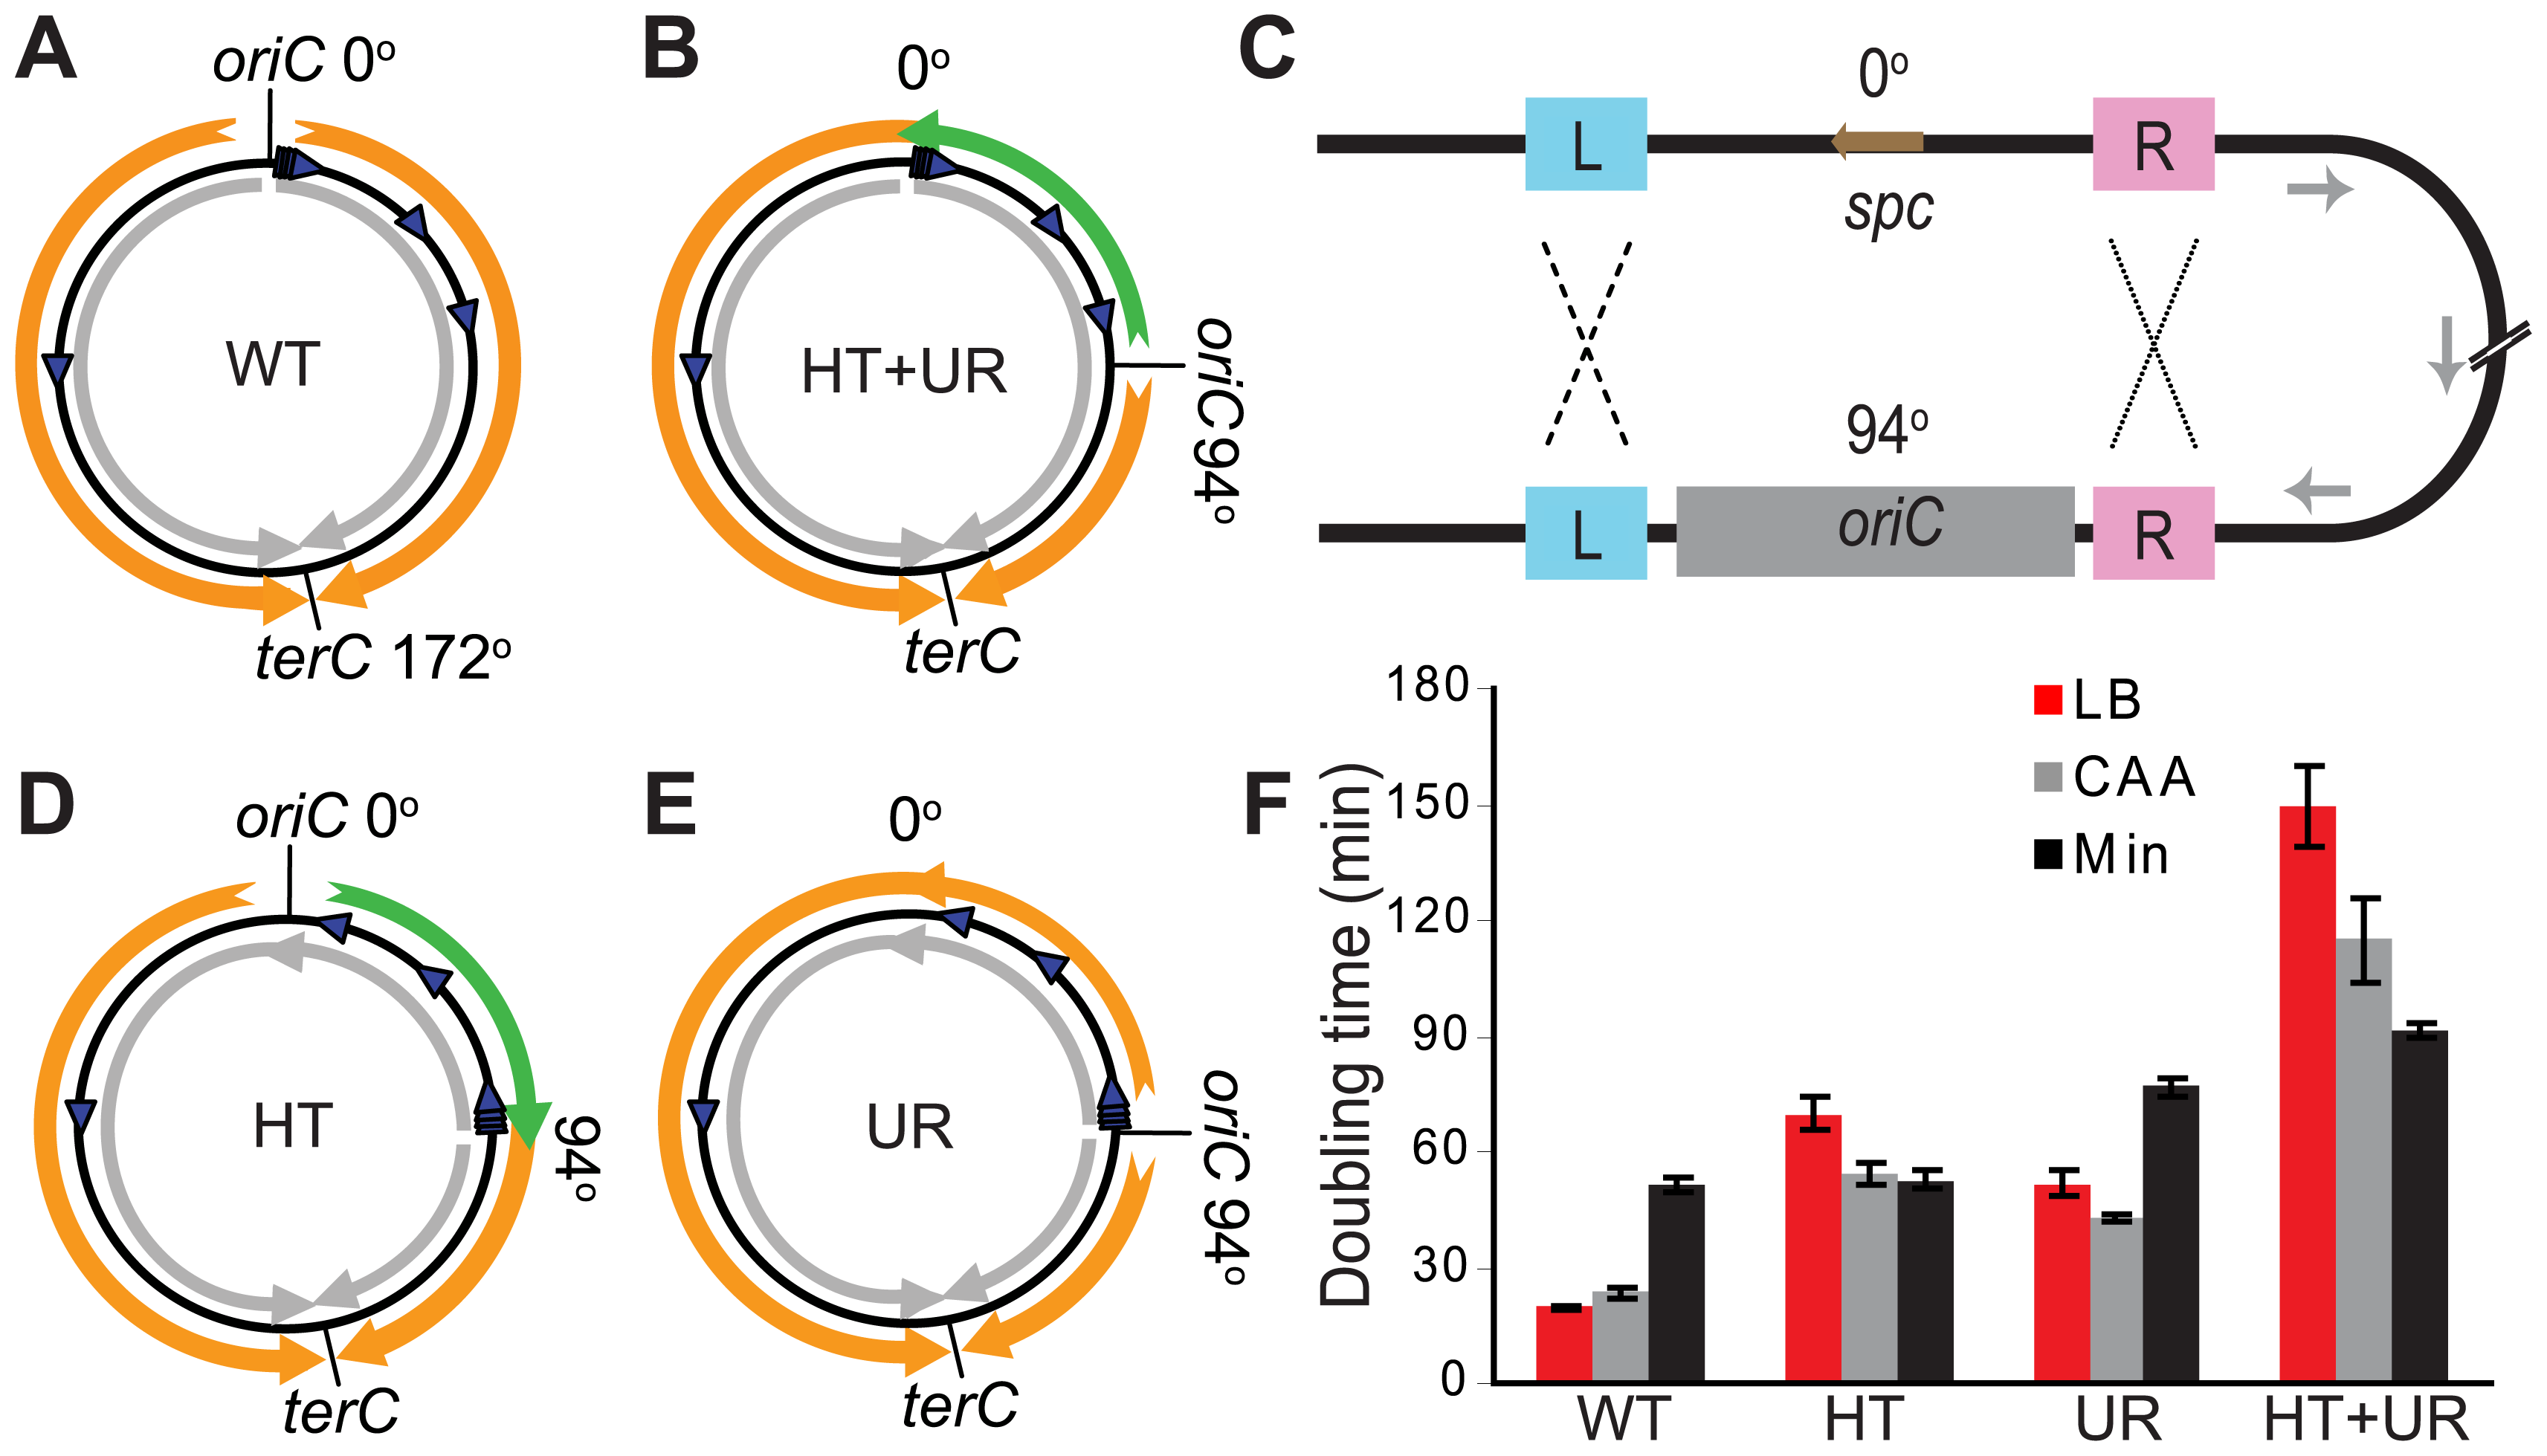 Alteration of different aspects of genome organization results in different growth defects.